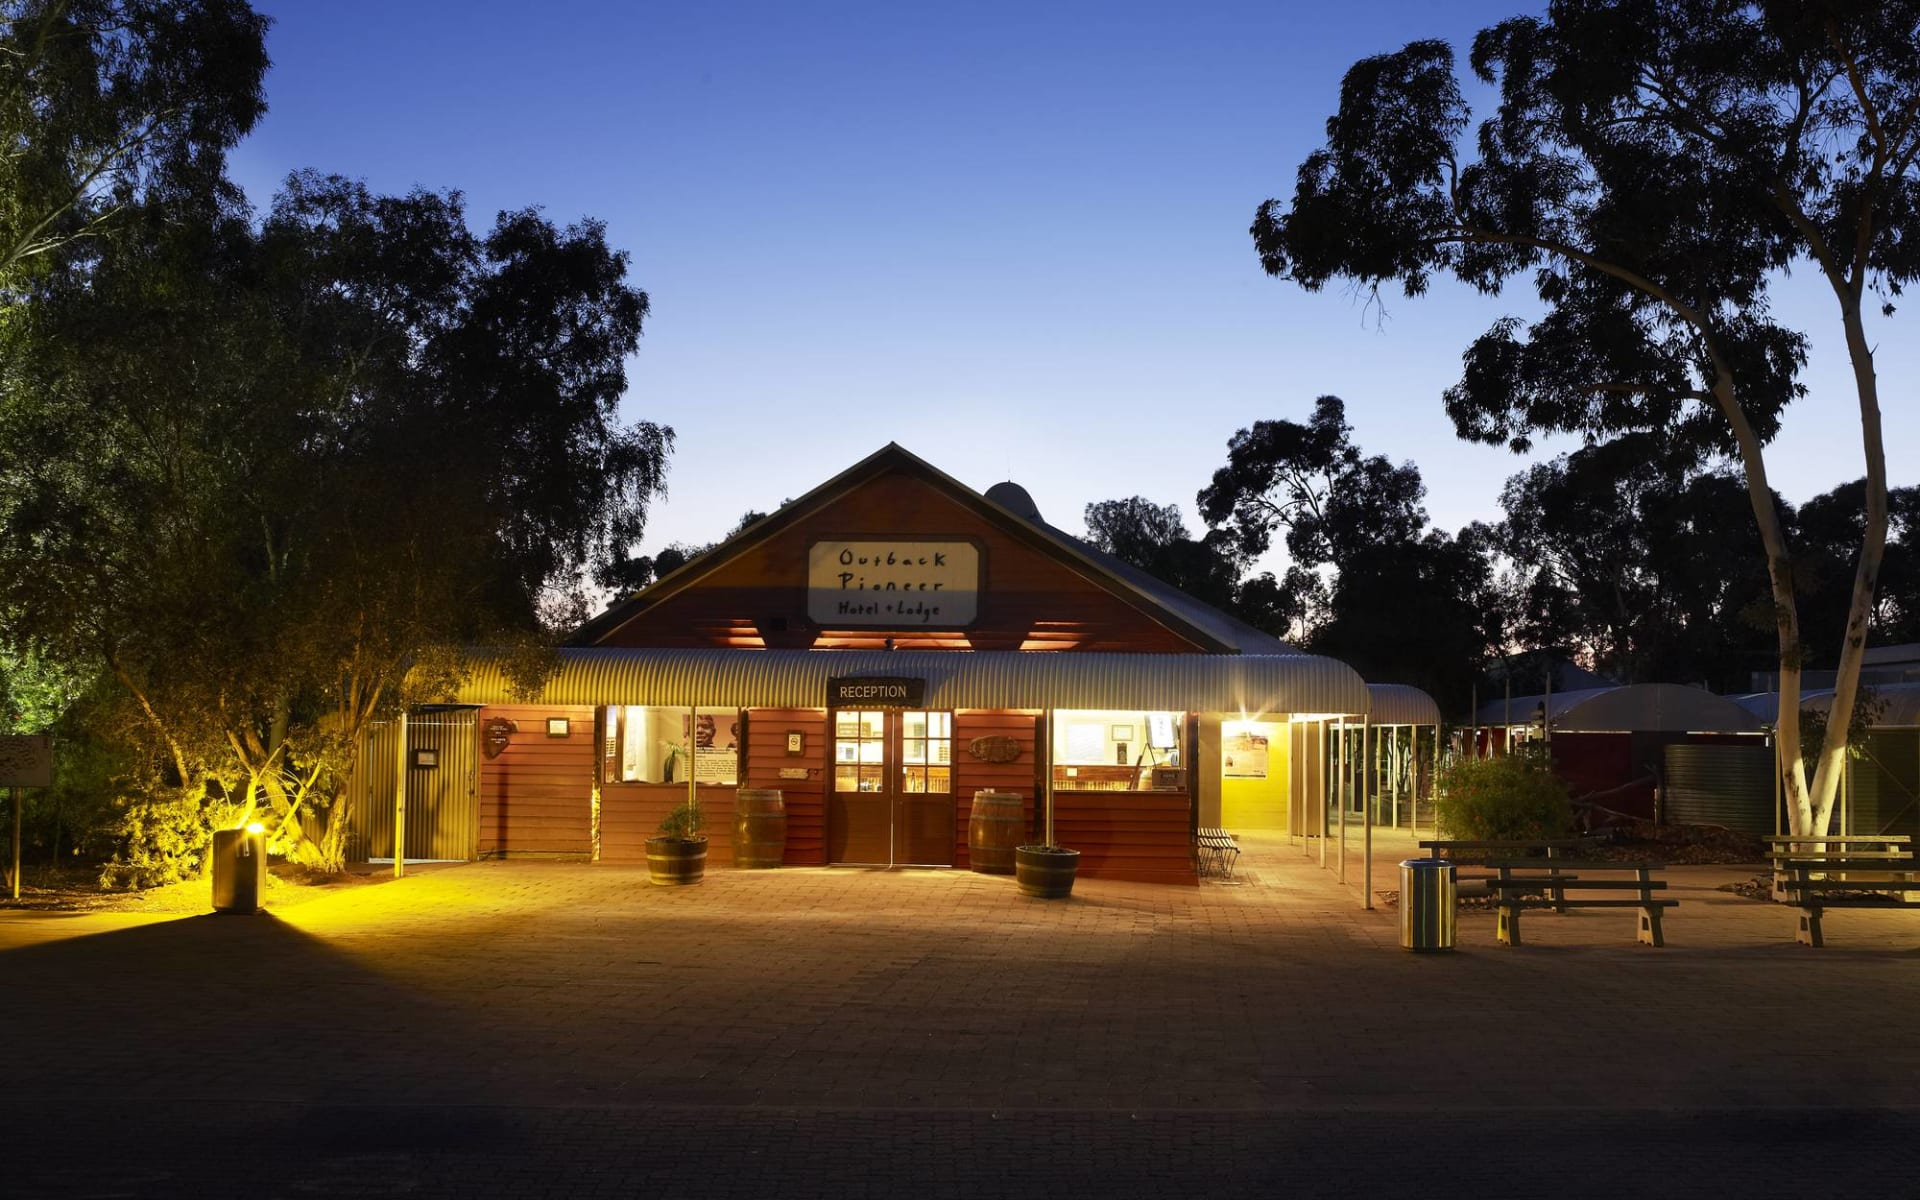 Outback Pioneer Hotel & Lodge in Ayers Rock - Yulara: Outback Pioneer exterior